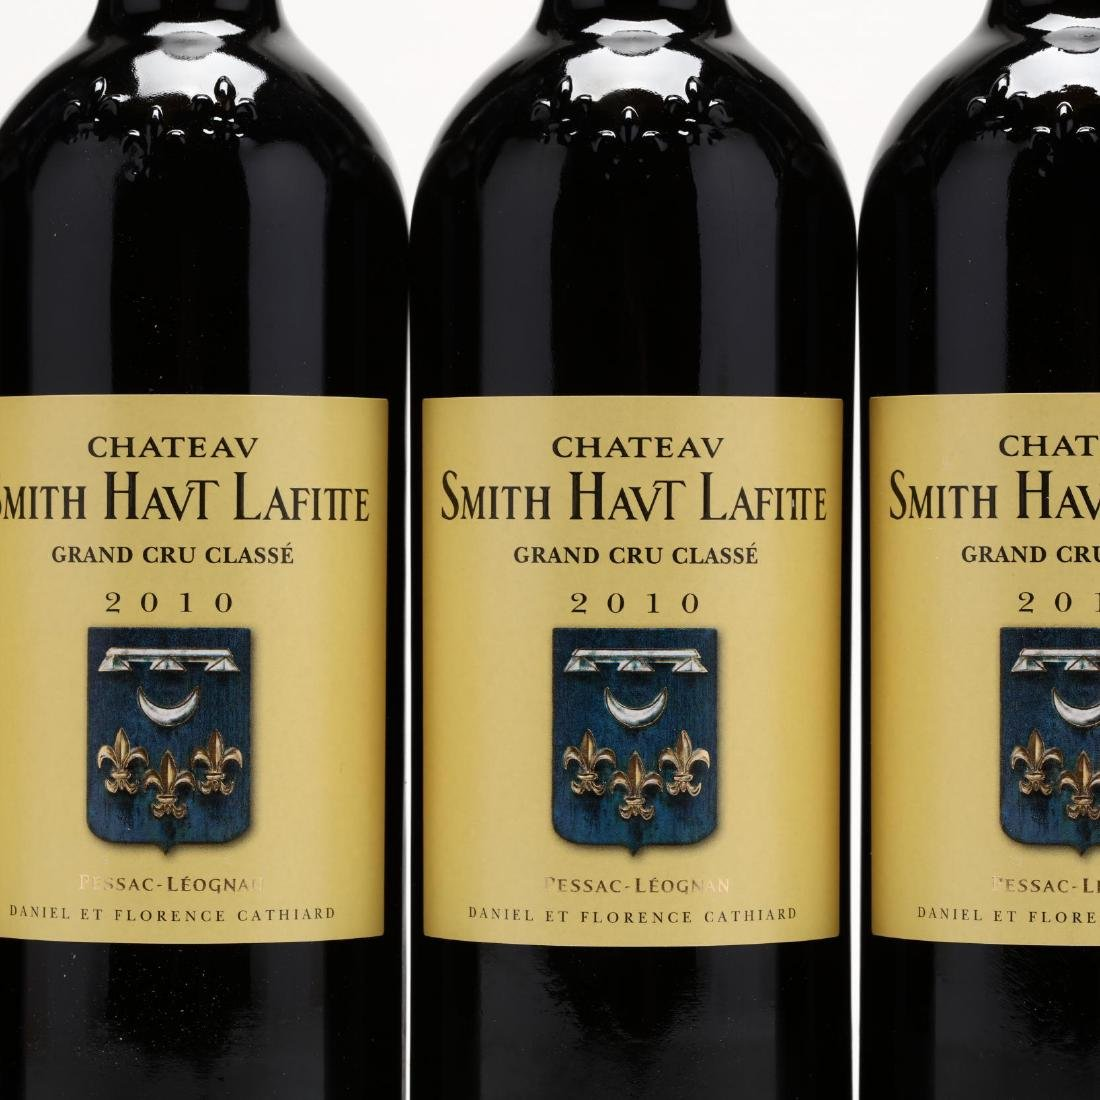 Chateau Smith Haut Lafitte - Vintage 2010 - 2